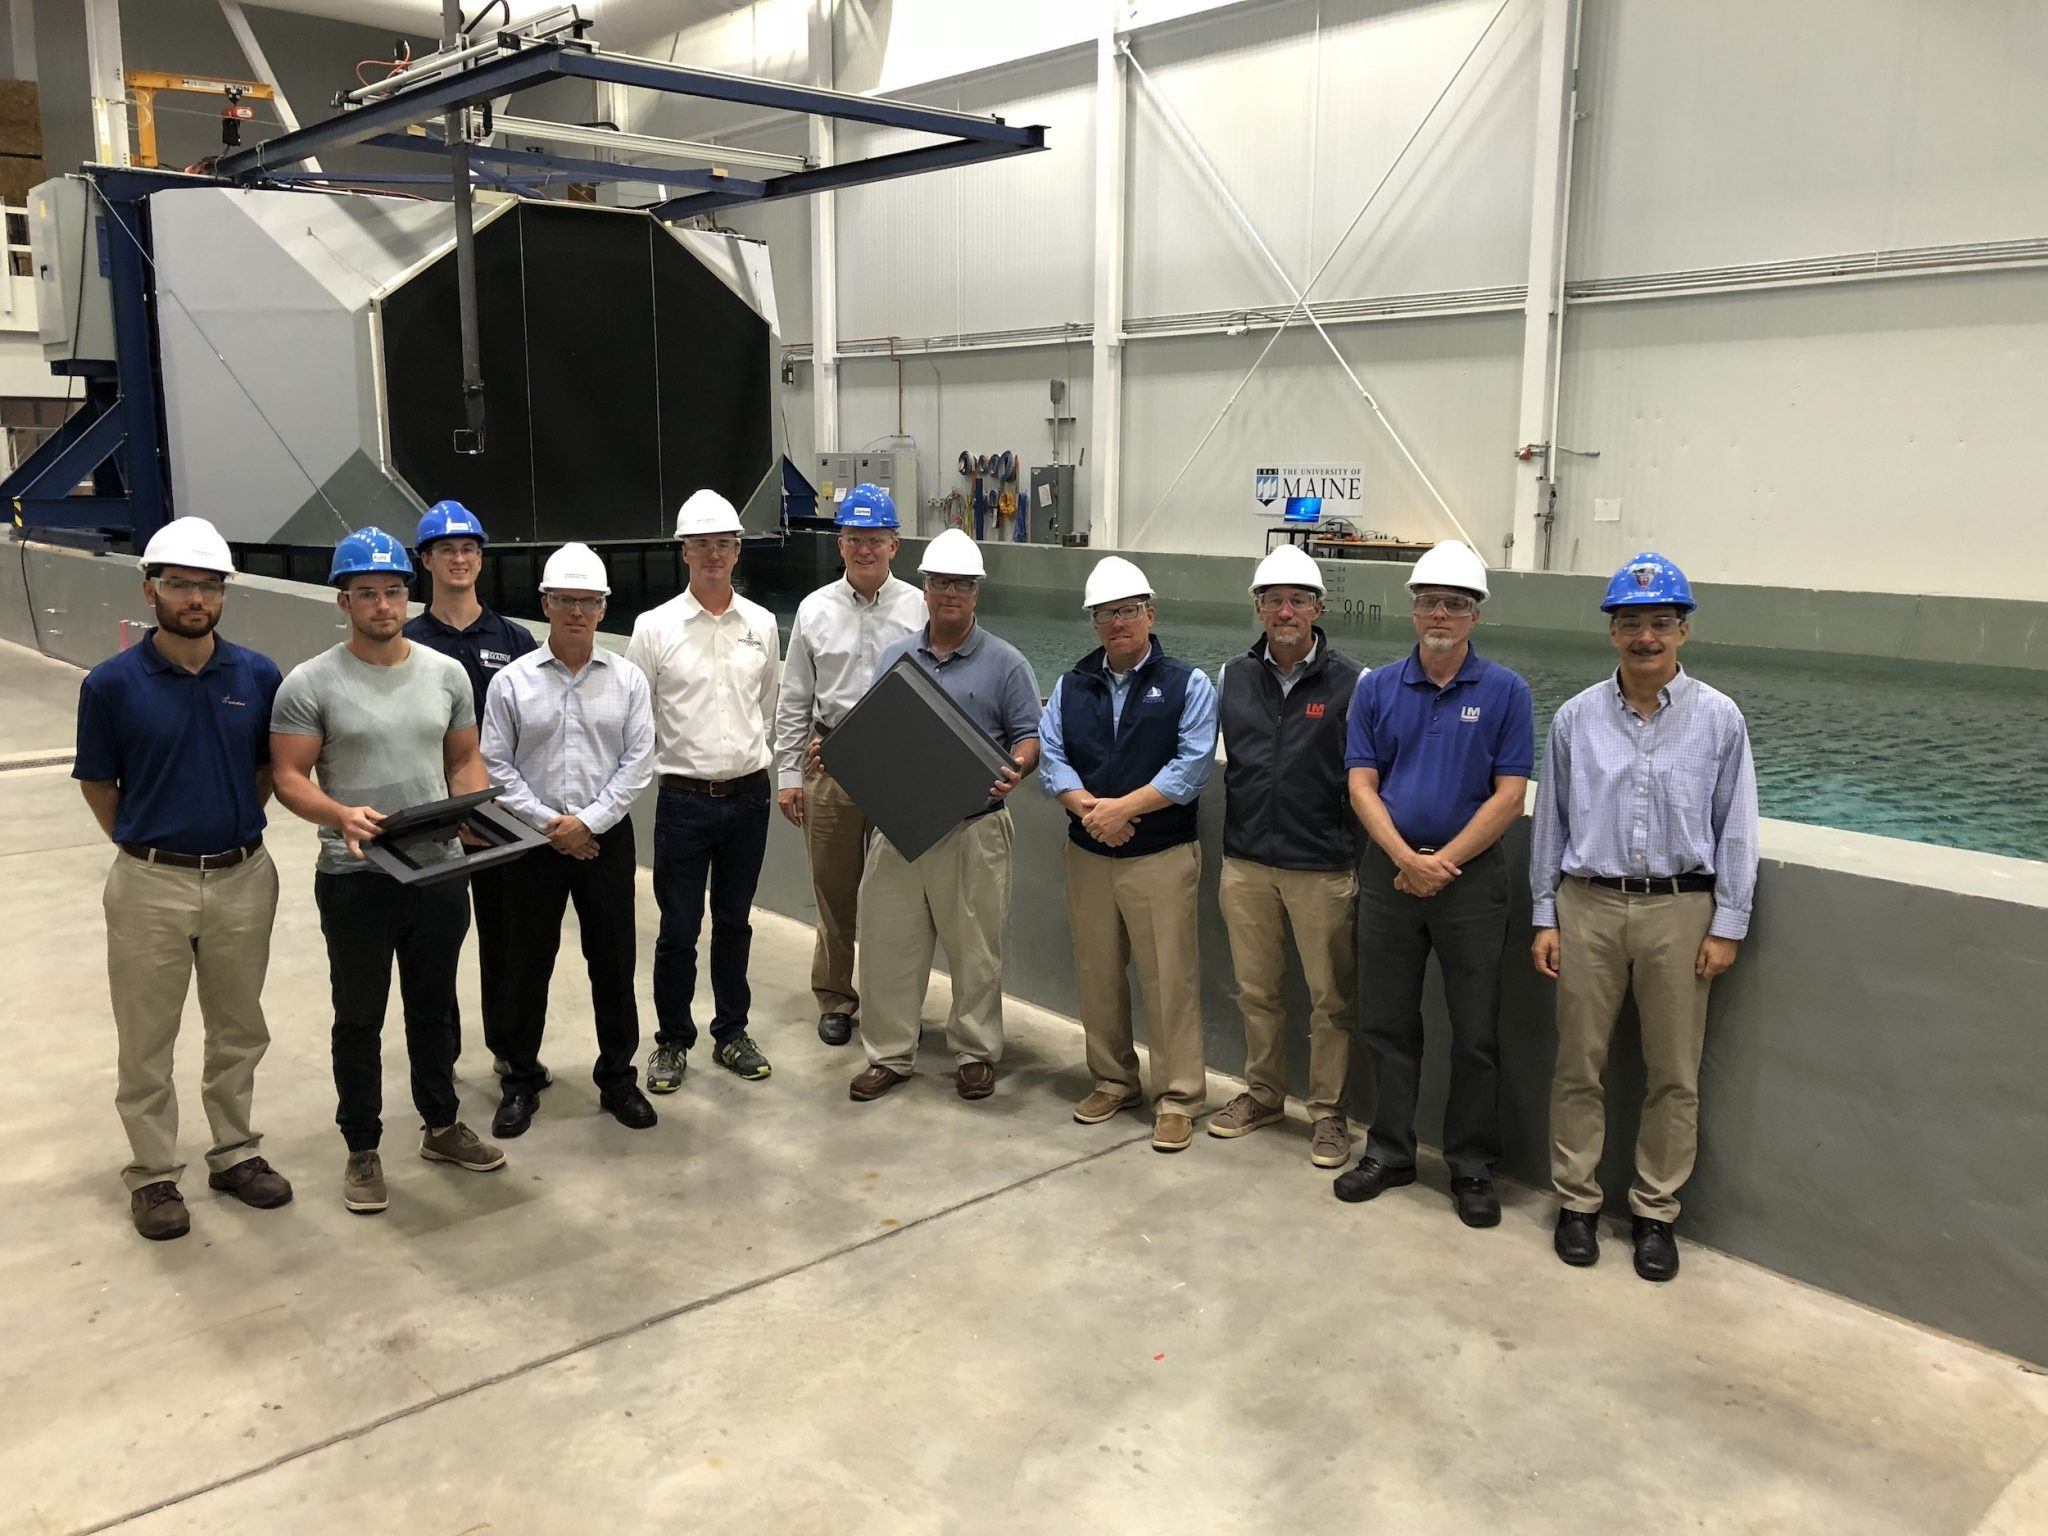 Boat builders from Maine visited the UMaine Composites Center. Image via UMaine